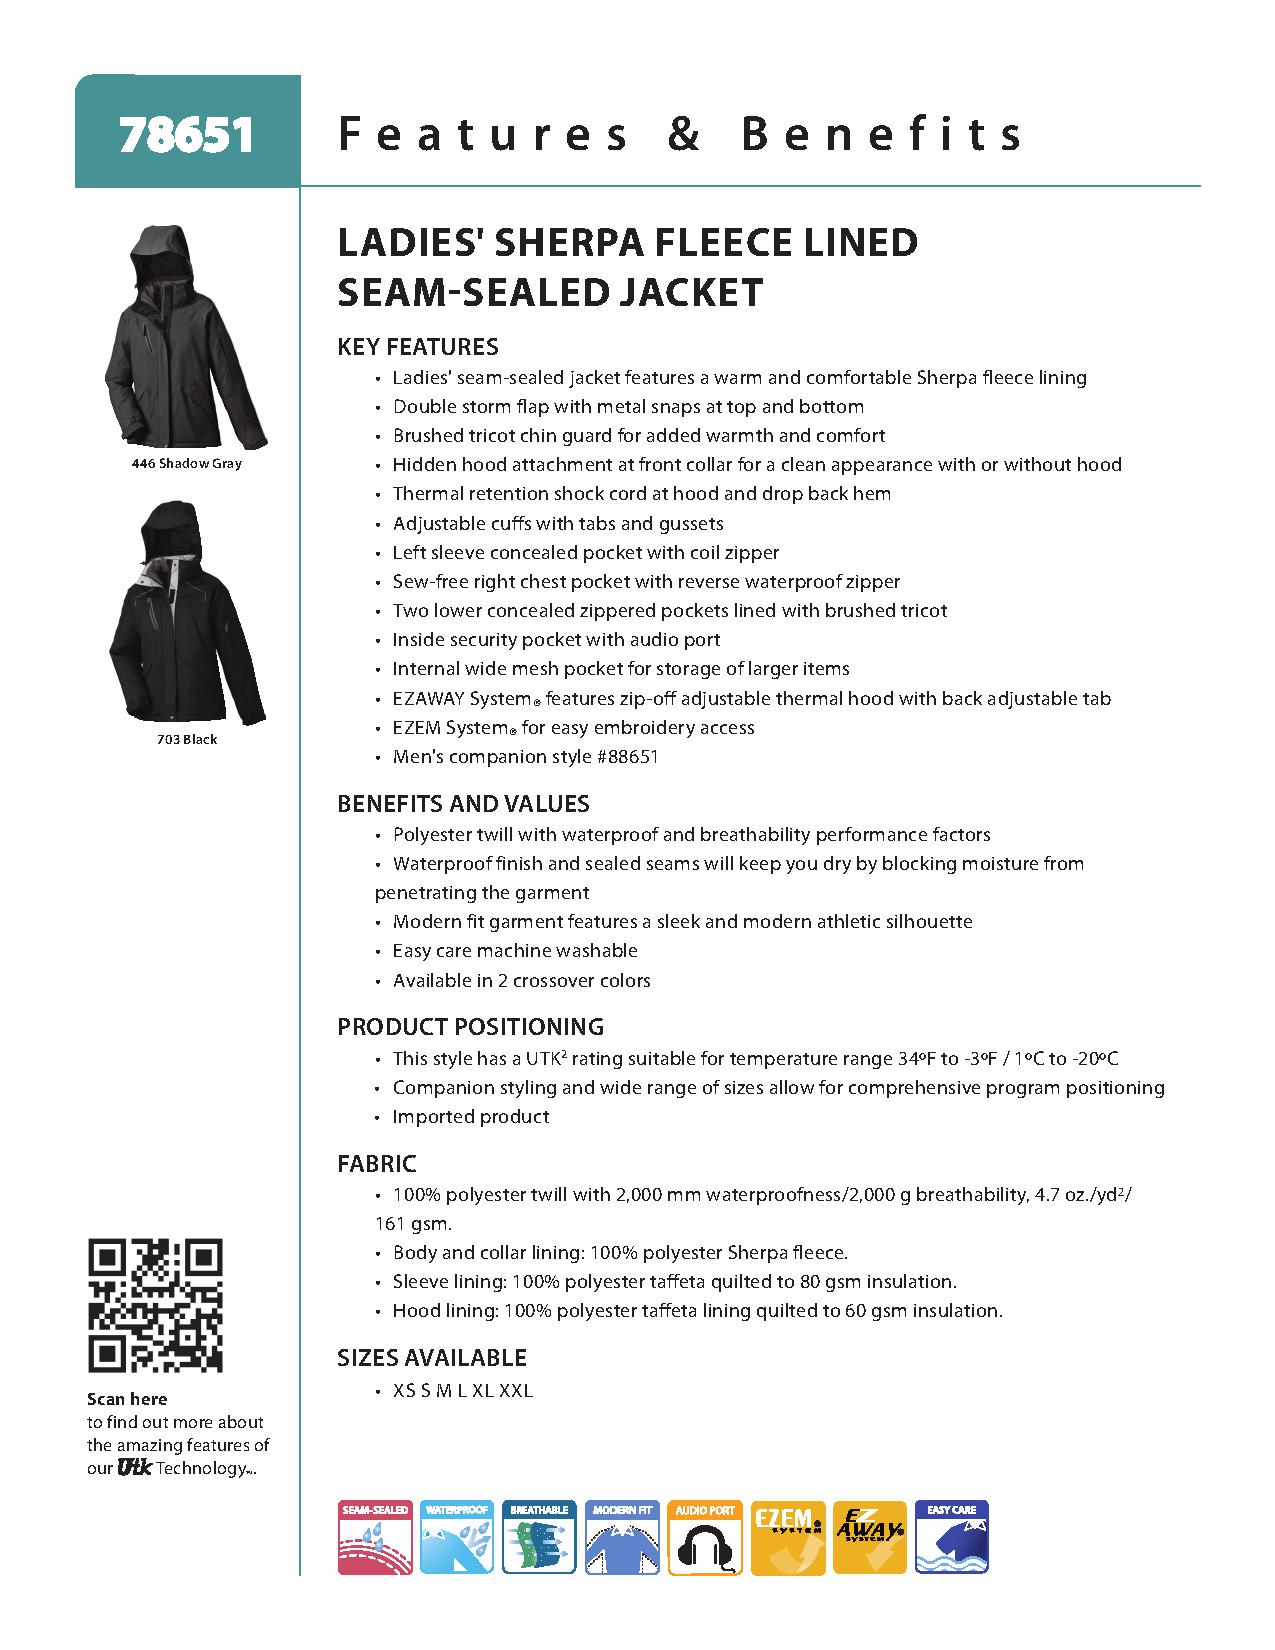 Ash City UTK 2 Warm.Logik 78651 - Adventure Ladies' Sherpa Fleece Lined Seam-Sealed Jacket